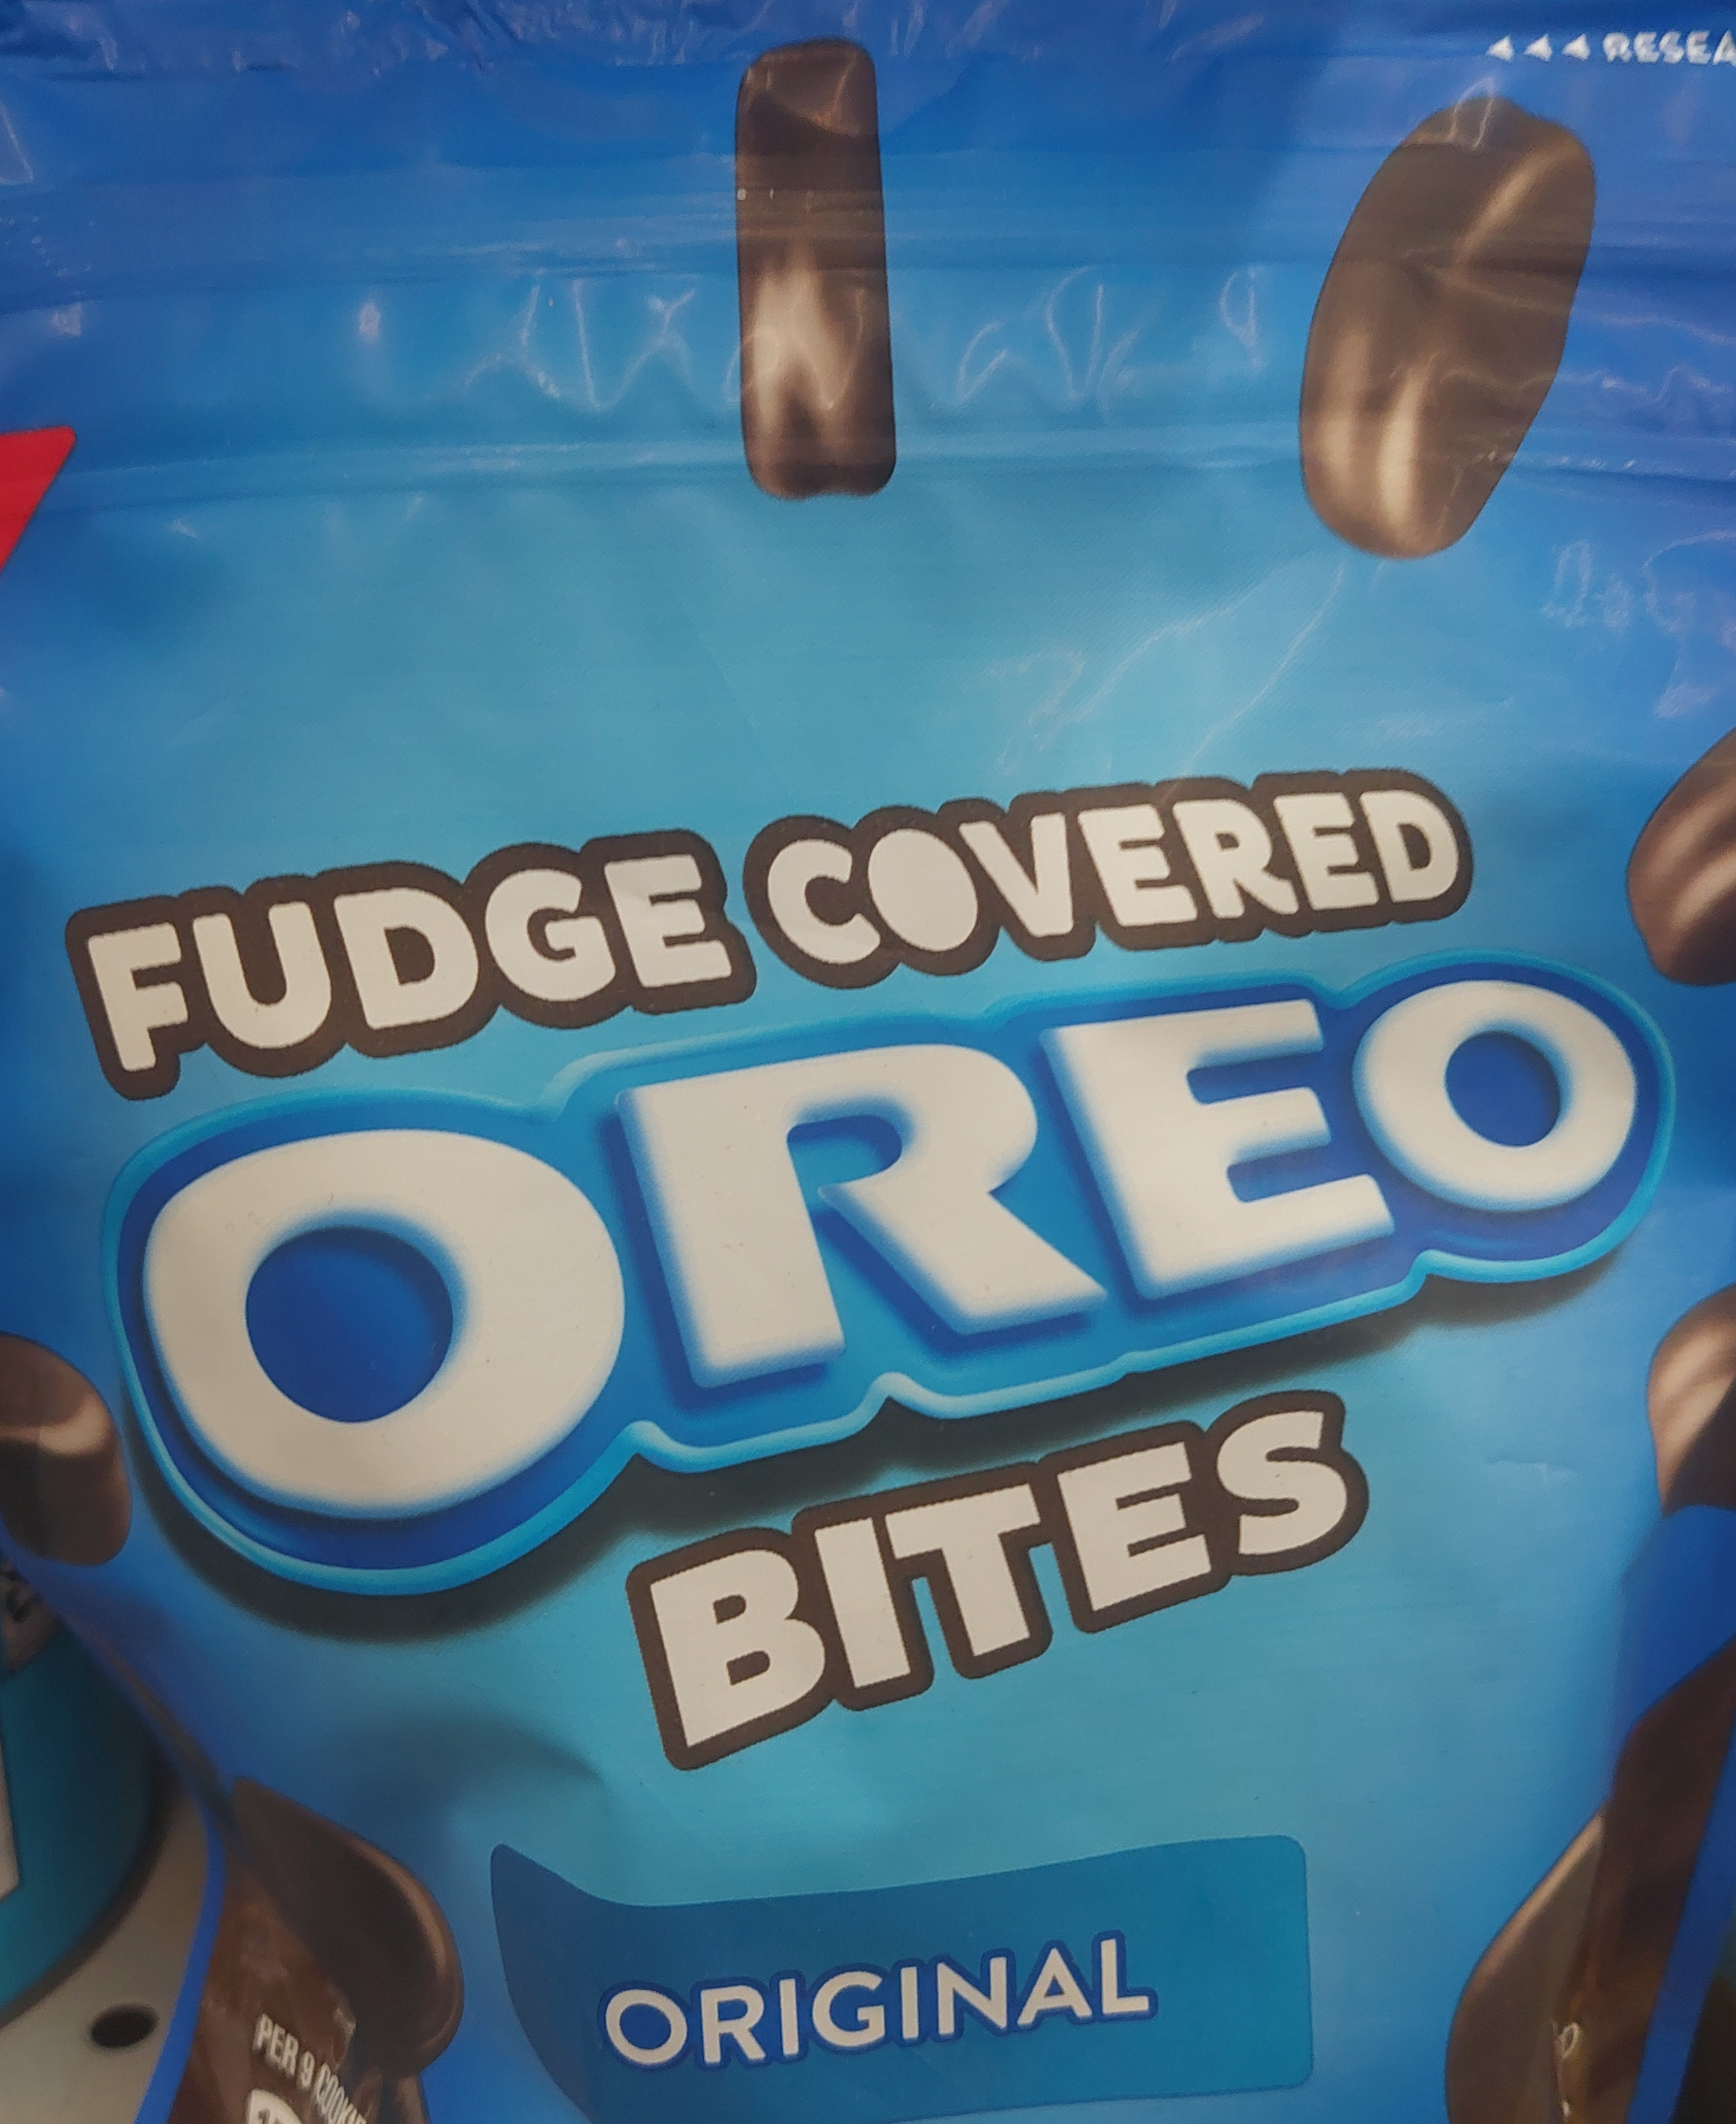 package of Fudge Covered Oreo Bites